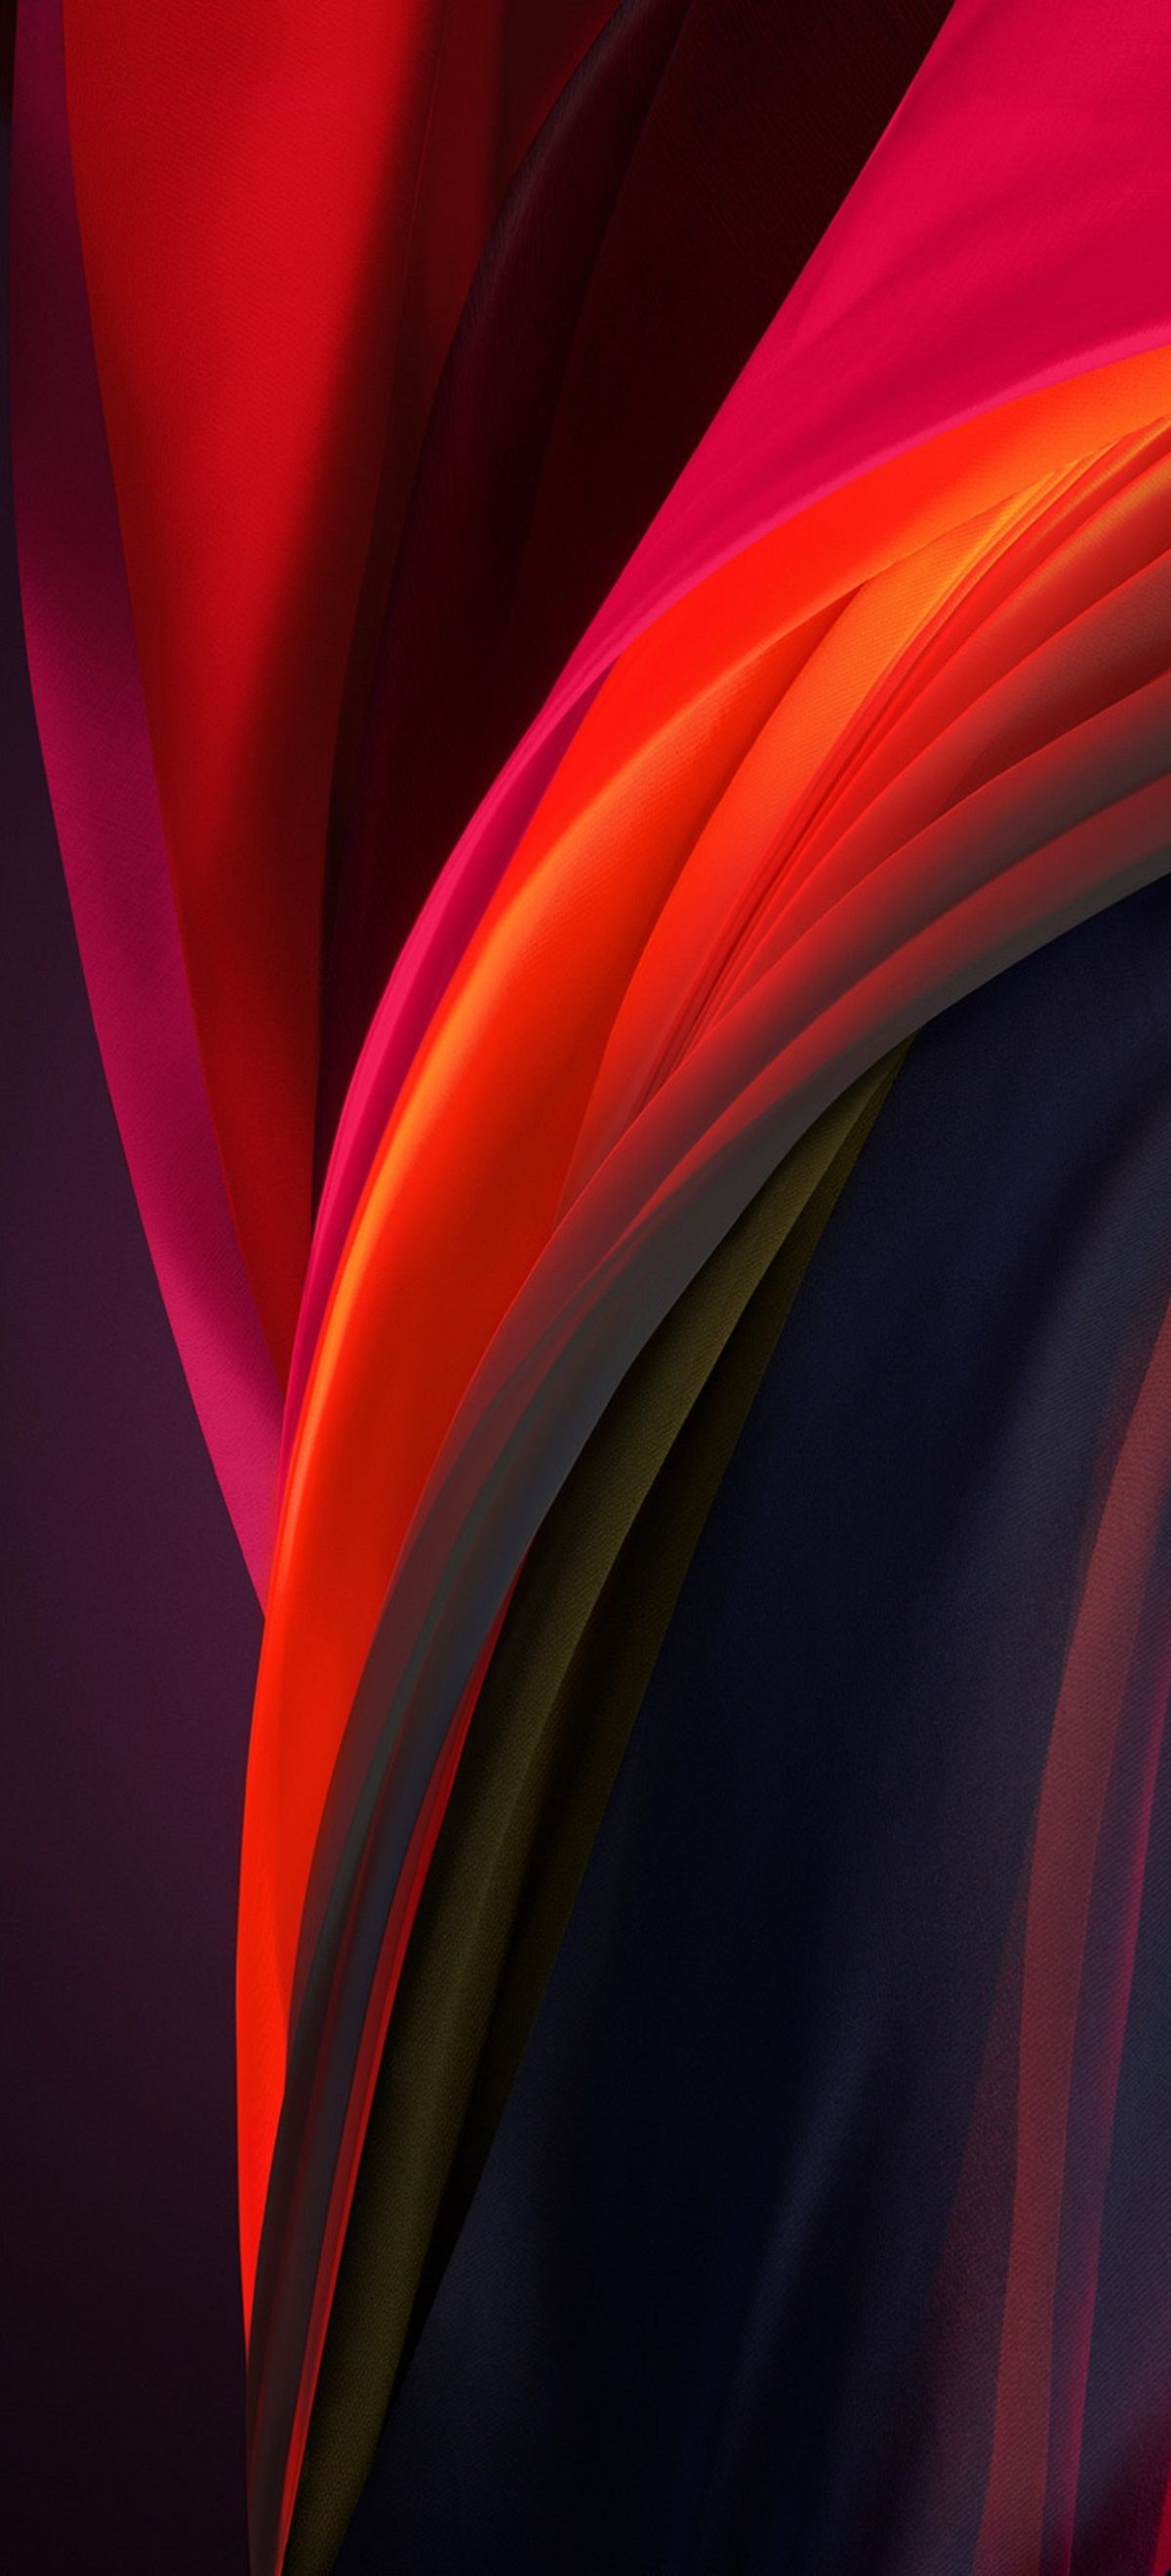 Pin On Iphone Se 2020 Wallpapers Iphone 12 Wallpaper